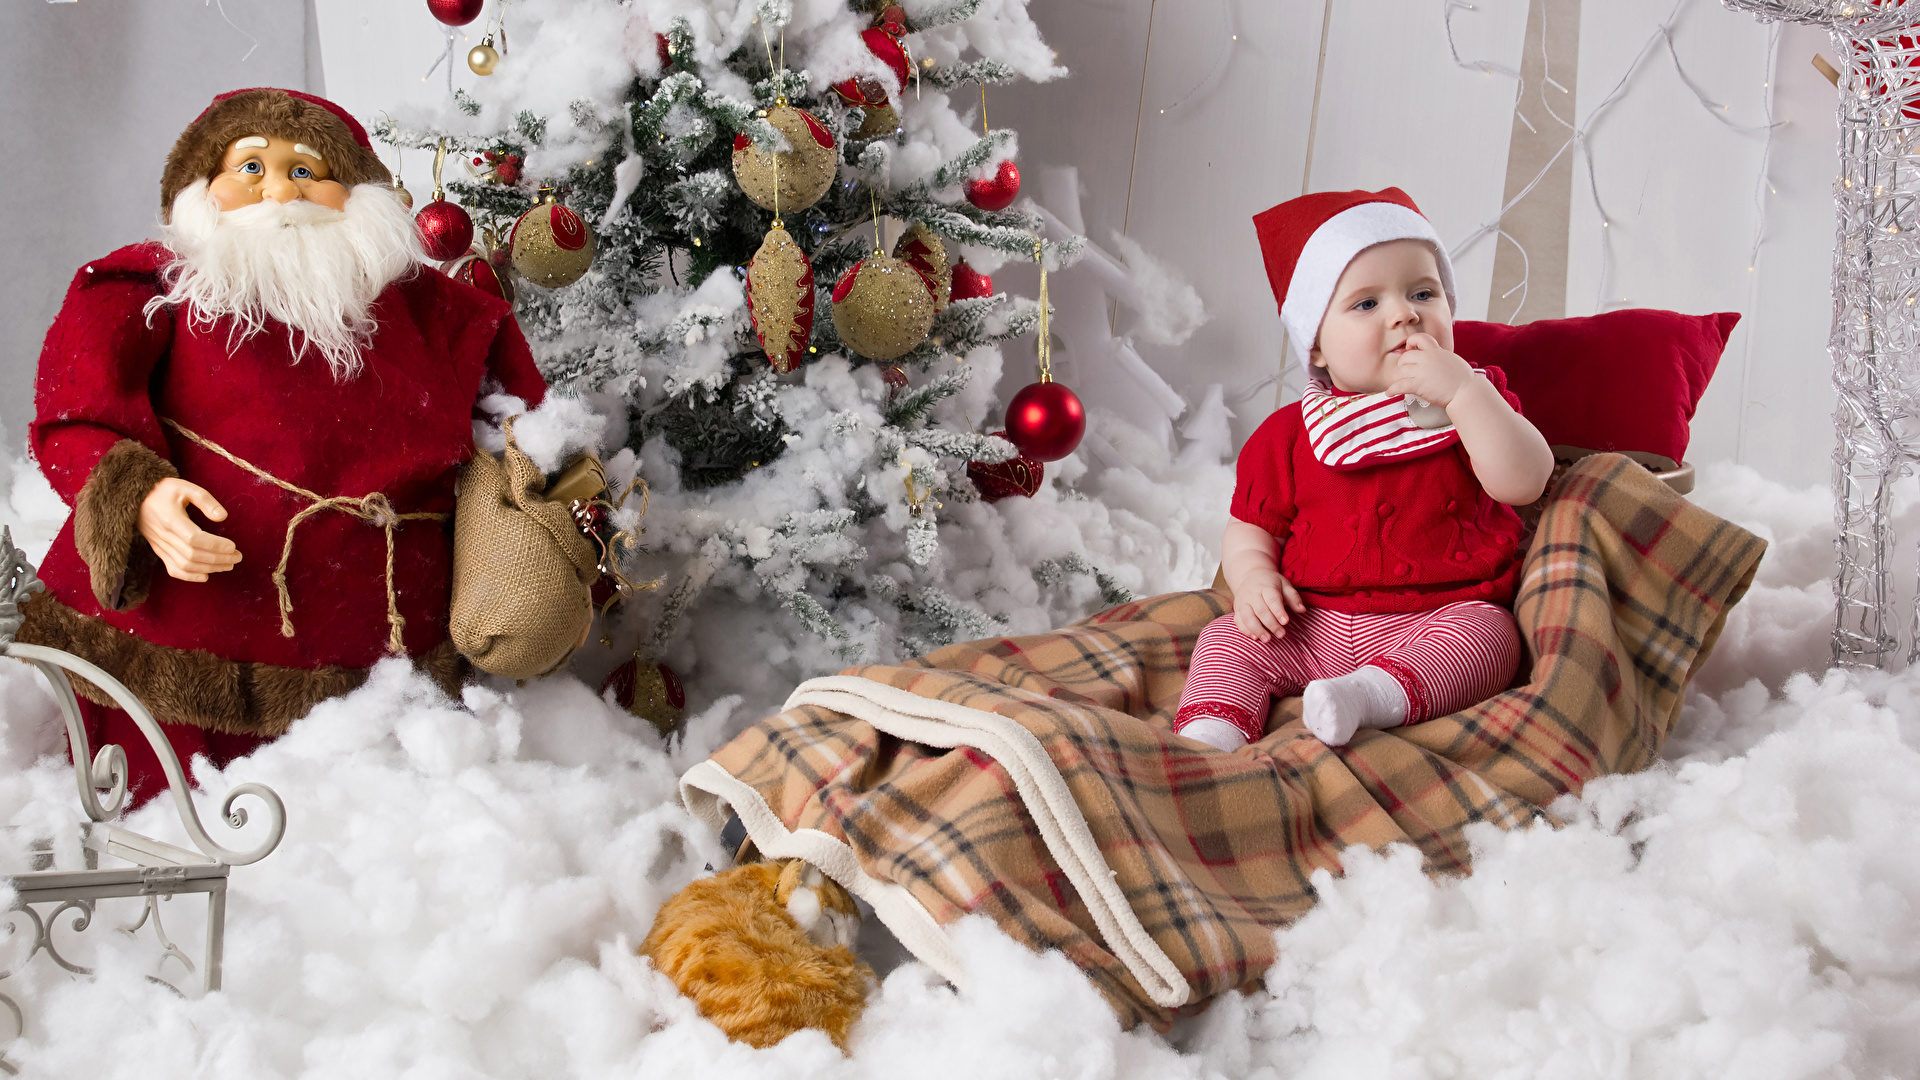 Christmas_Christmas_tree_Santa_Claus_Infants_538739_1920x1080.jpg